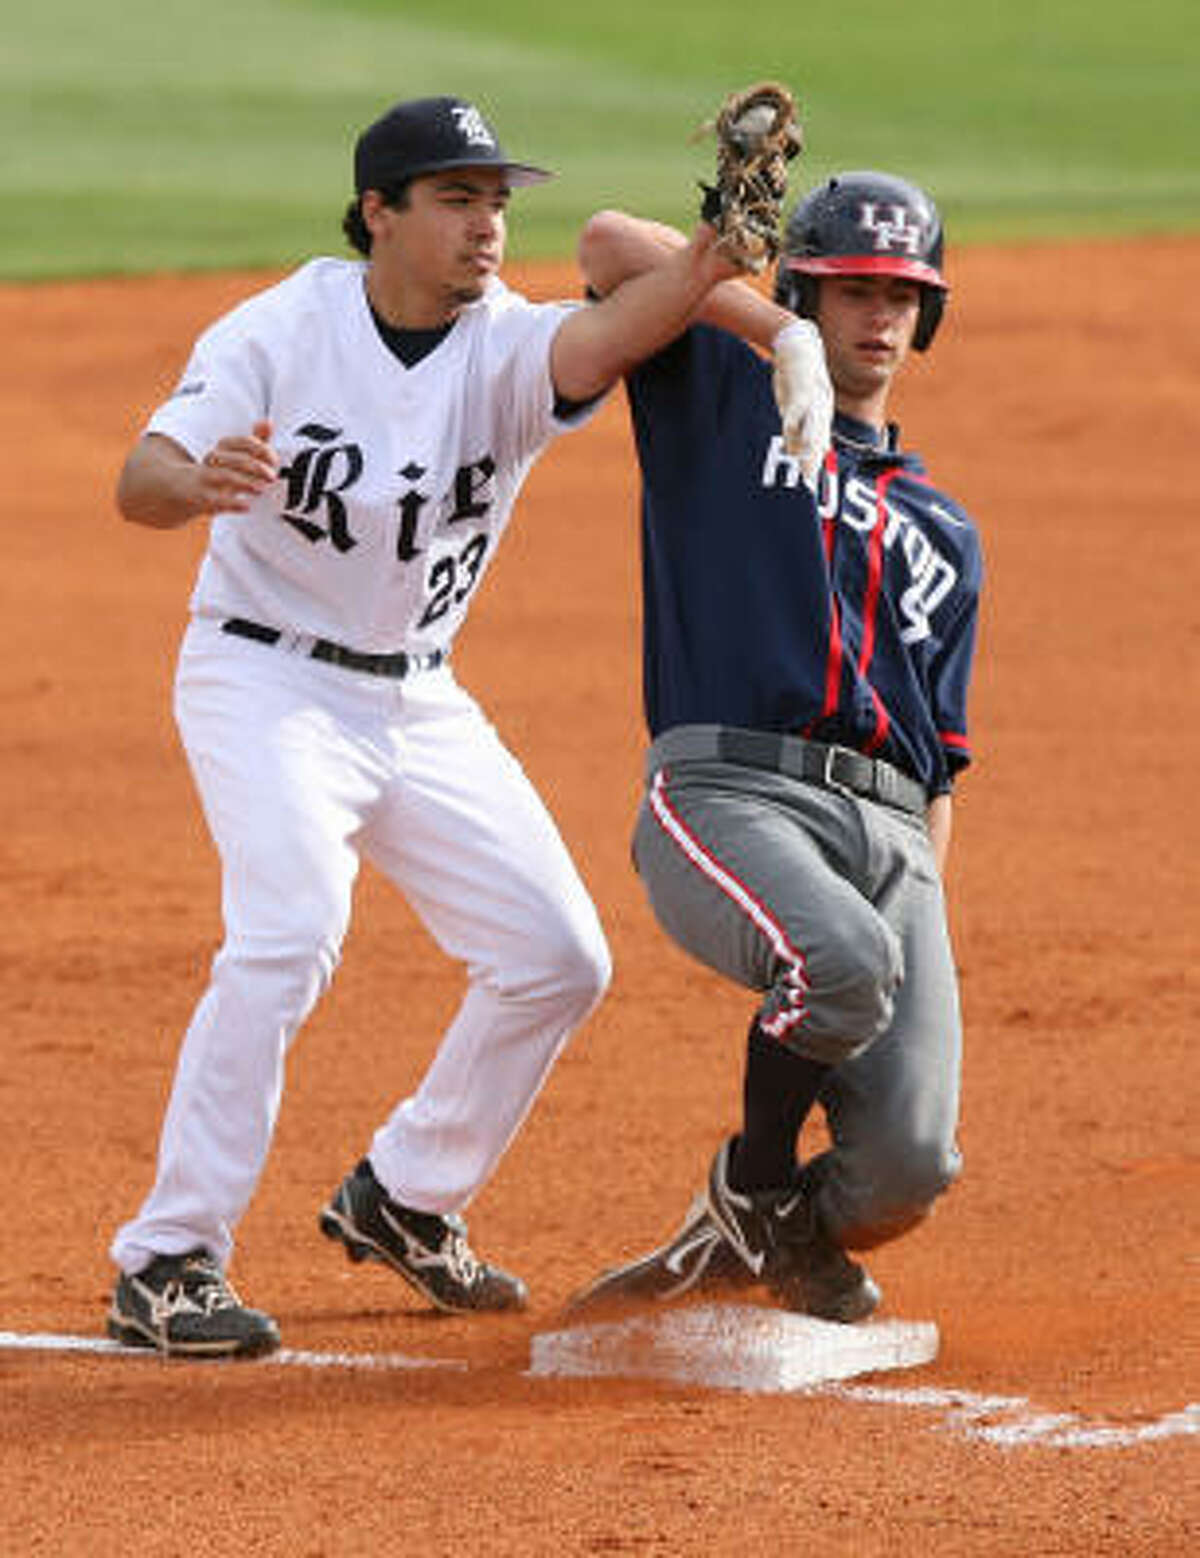 Rice third basemen Anthony Rendon (23) tags out University of Houston's Chase Dempsay (9).